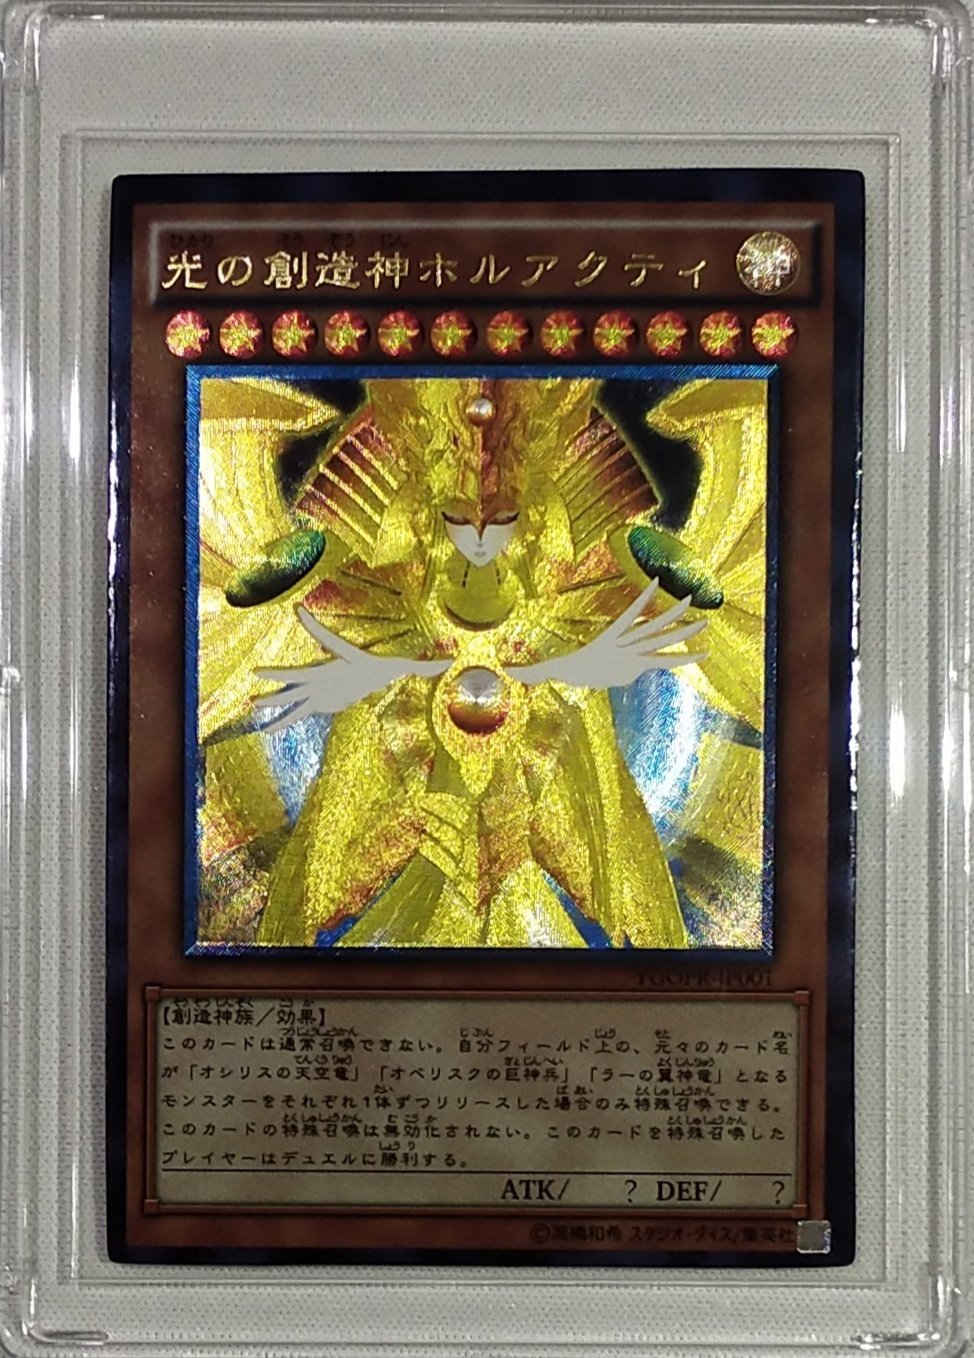 Yu Gi Oh DIY God of Light Creation Colorful Toys Hobbies Hobby Collectibles Game Collection Anime Cards